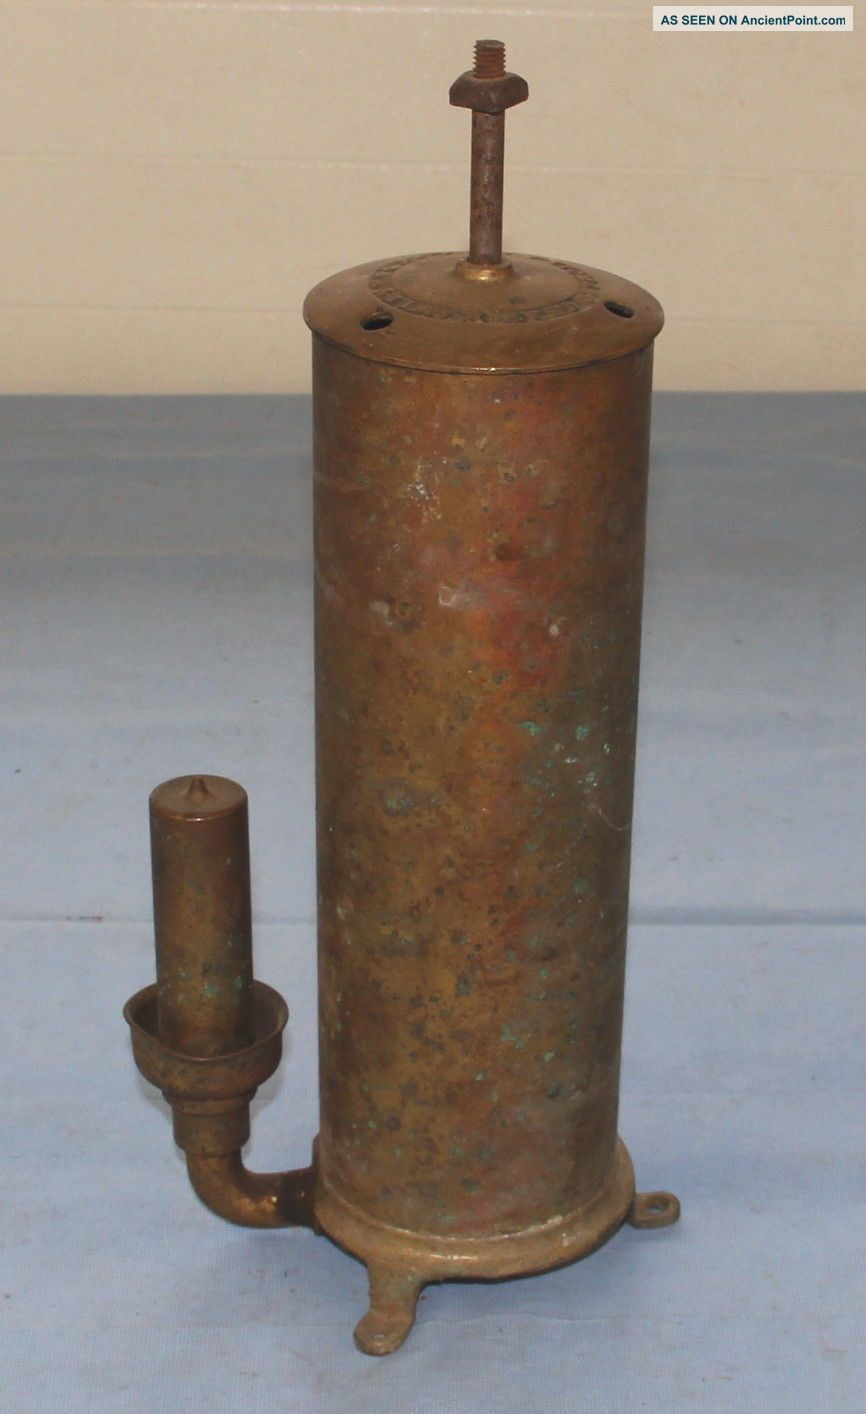 Vintage Brass Fog Horn ? Whistle Gray - Hawley Detroit Mich Steam Engine Hit Miss Bells & Whistles photo